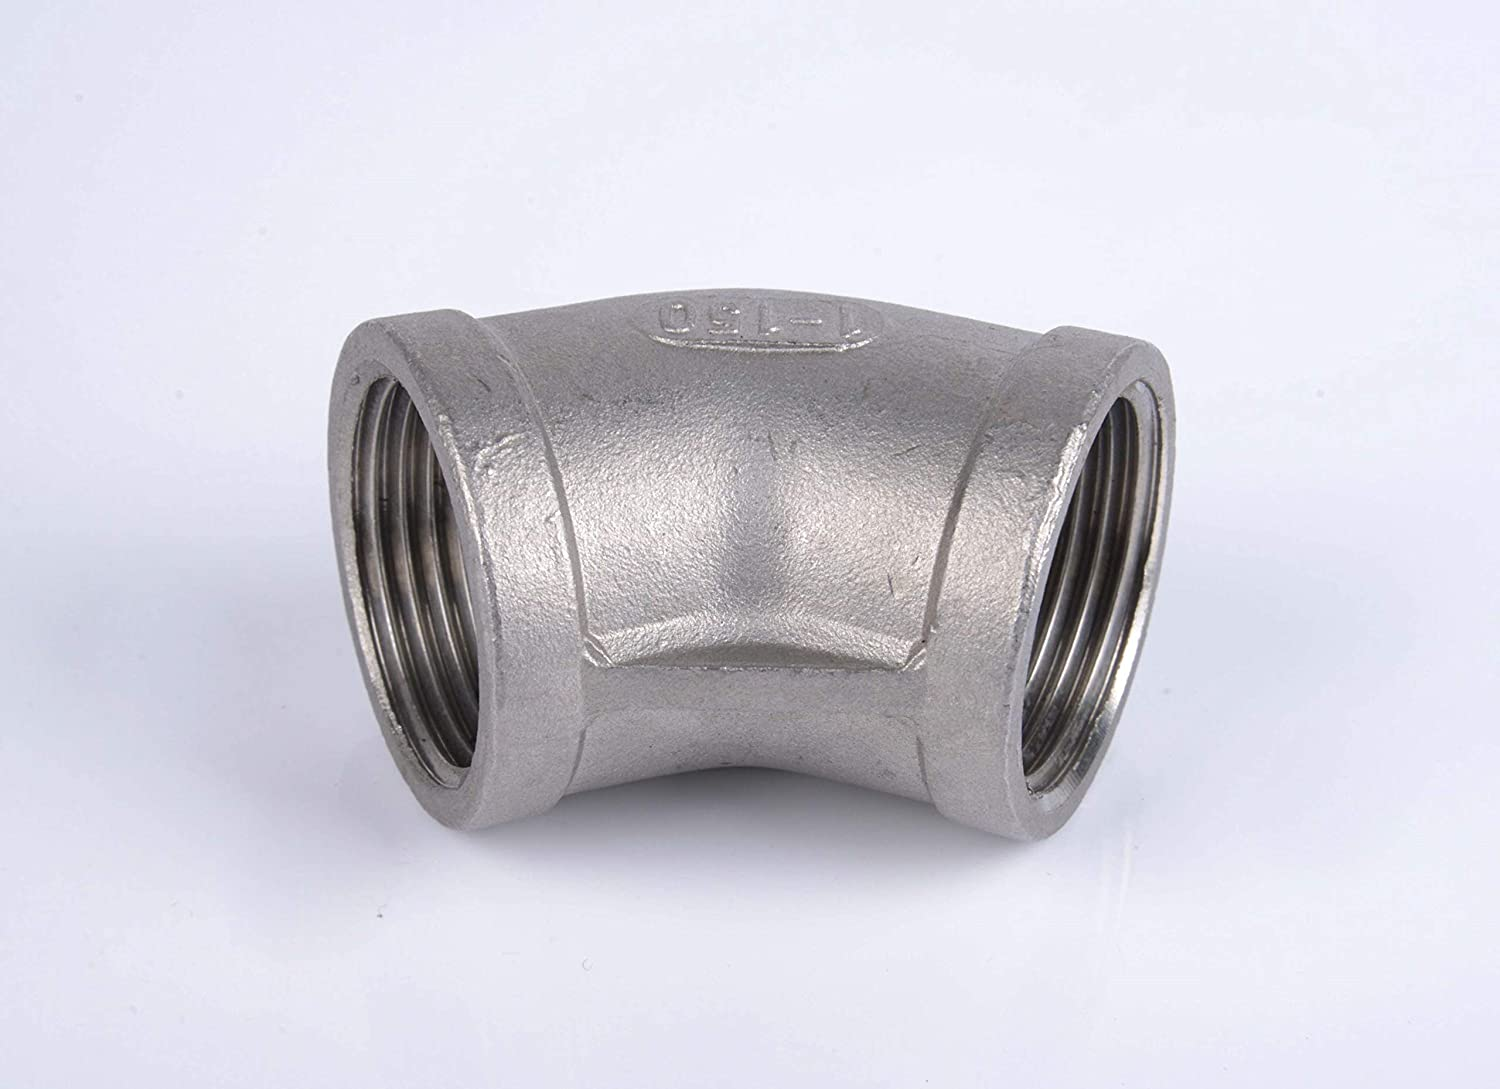 PELLER 316 Stainless Steel Elbow 45 Degree Female x Female NPT Threaded Pipe Fittings 2